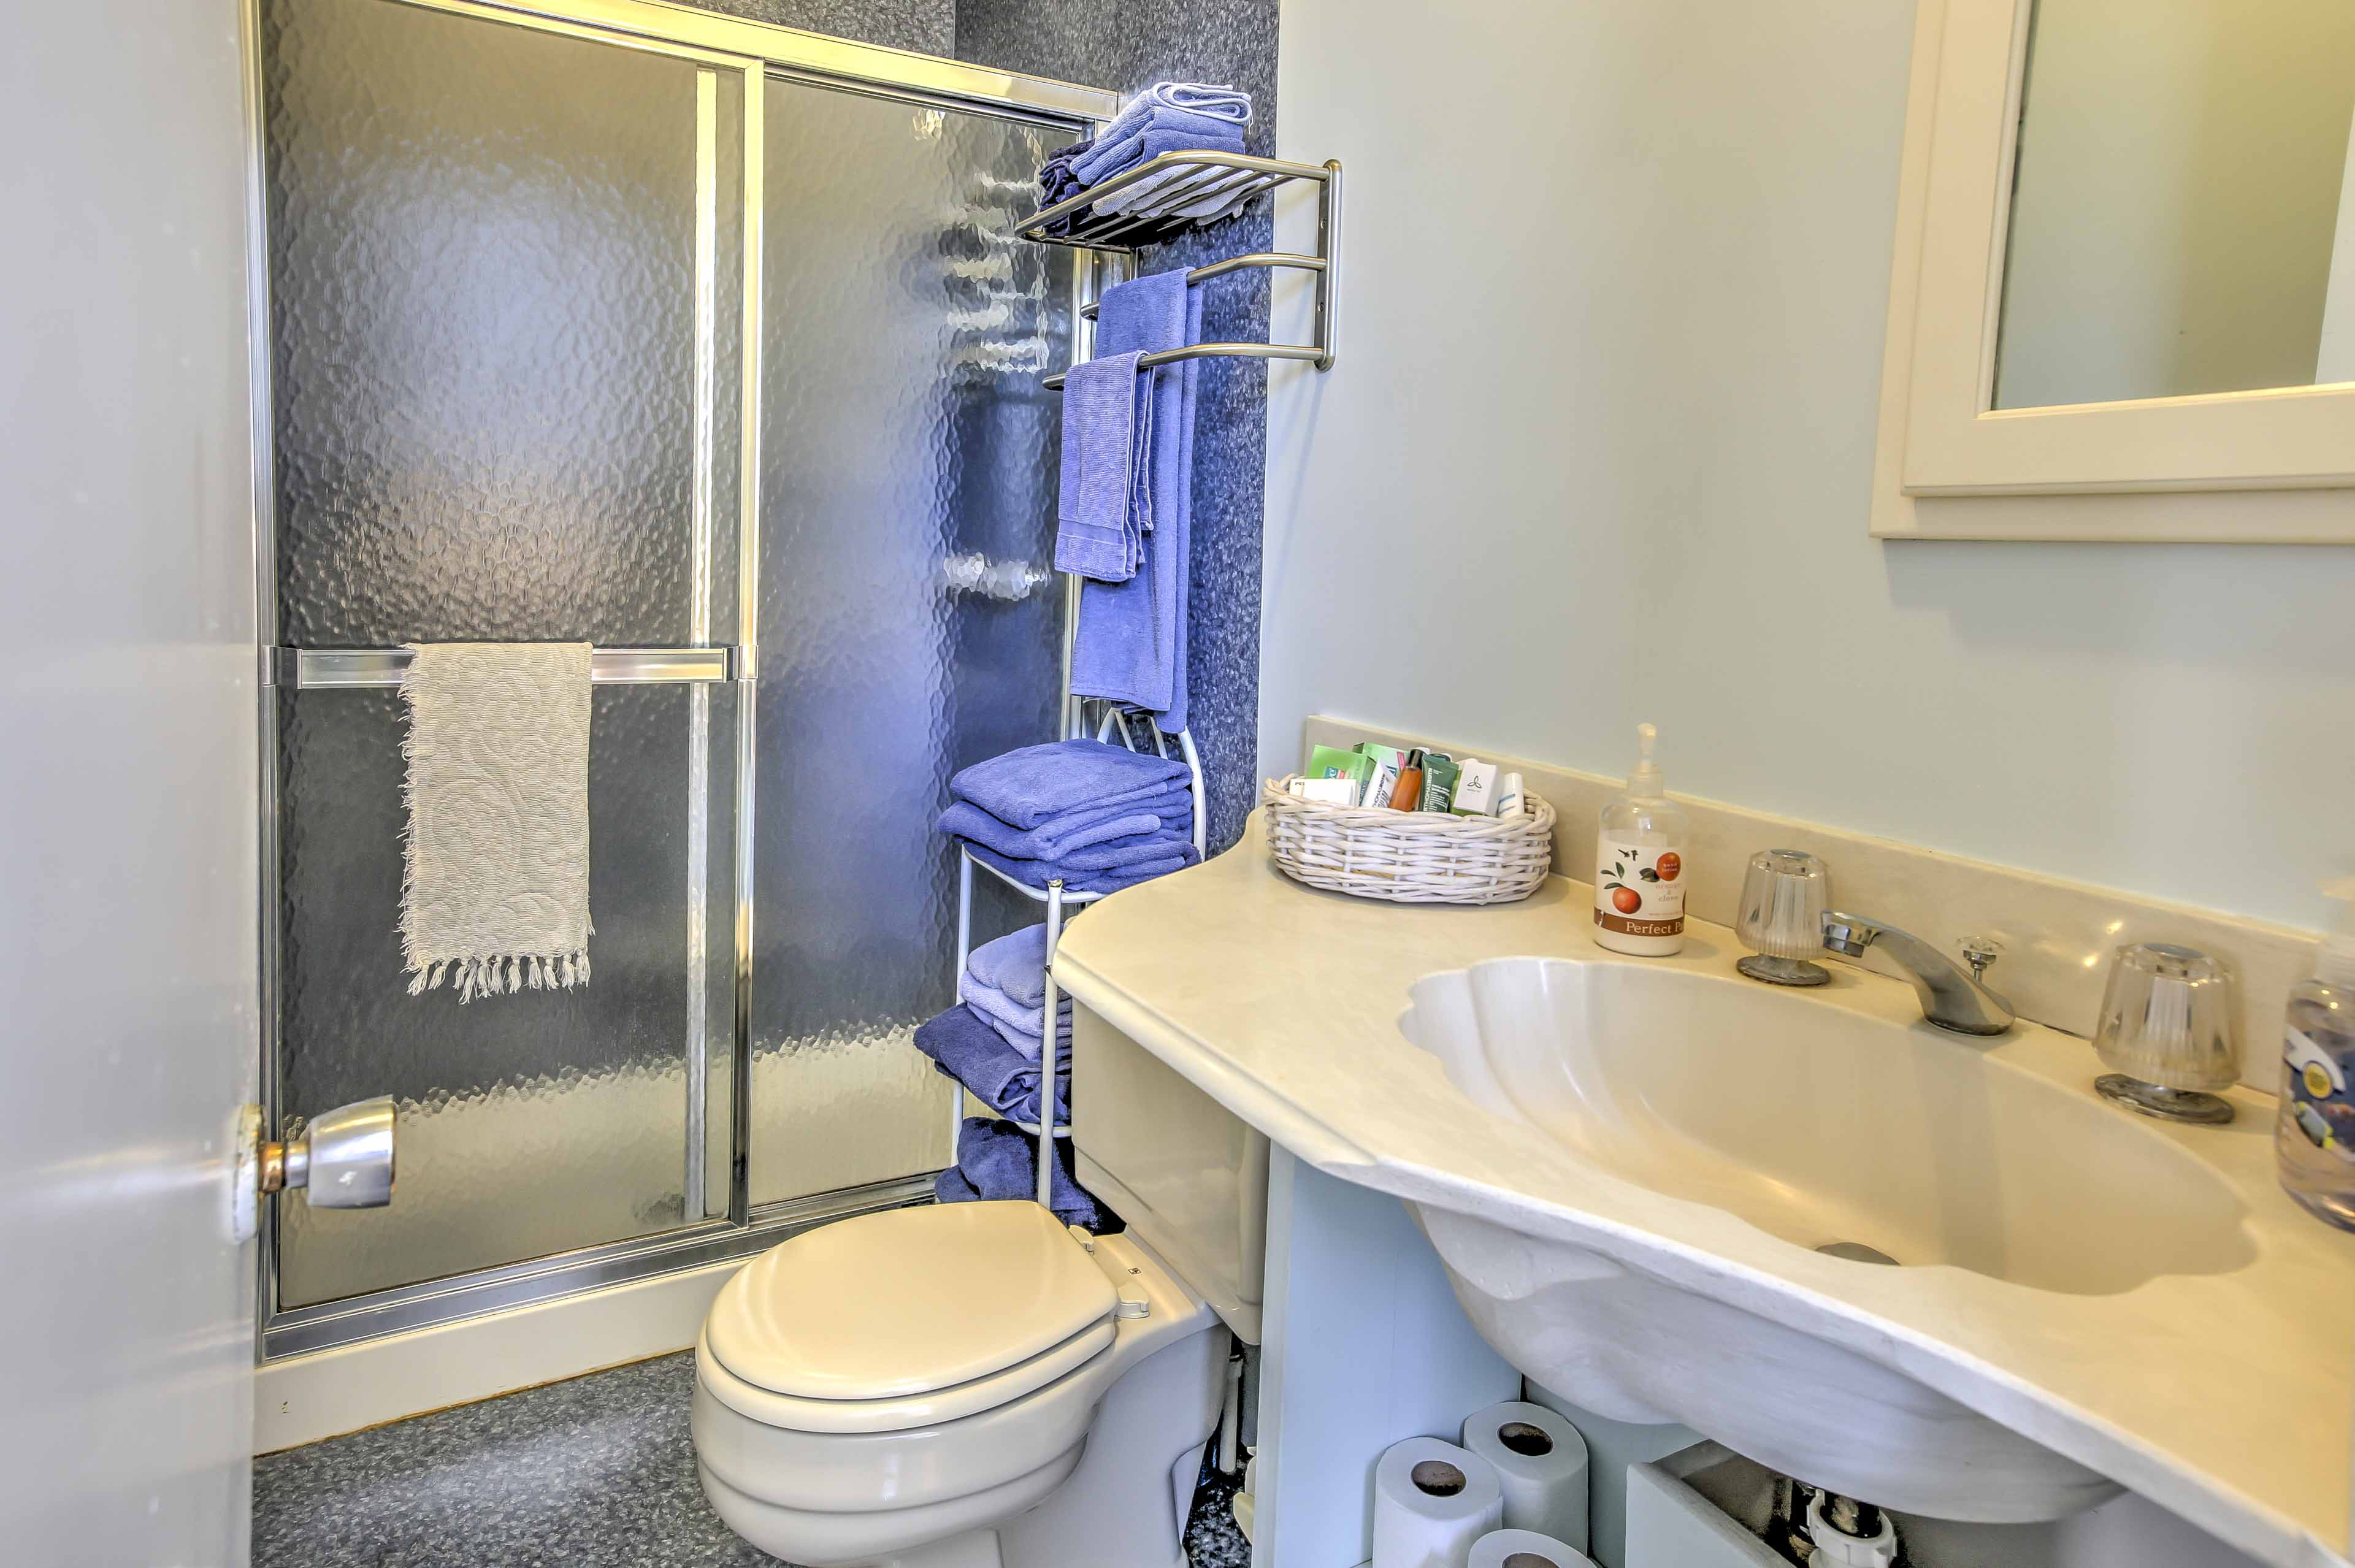 The bathroom provides a space to clean up after the beach & a shower/tub combo.